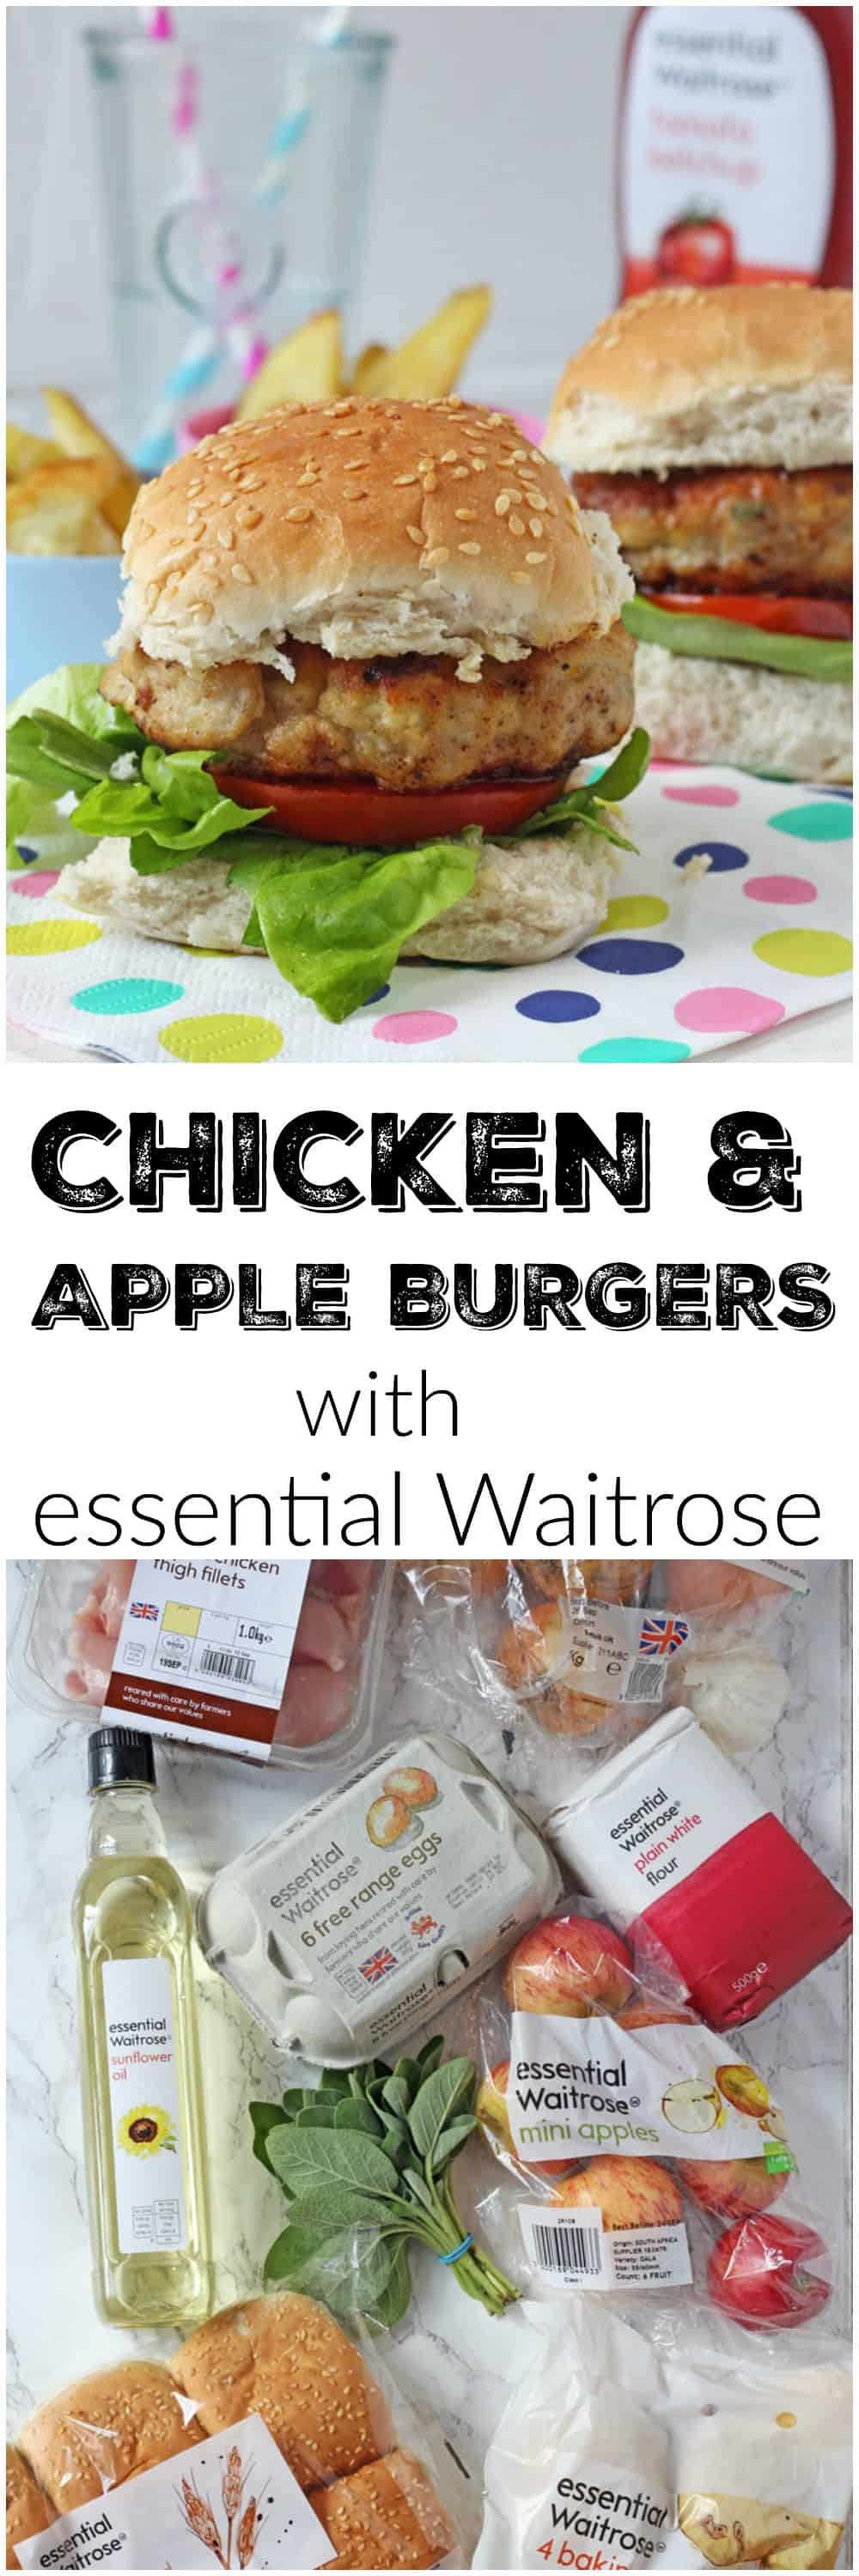 Delicious kid-friendly burgers made with chicken thighs and grates apple, all from the essential Waitrose range.